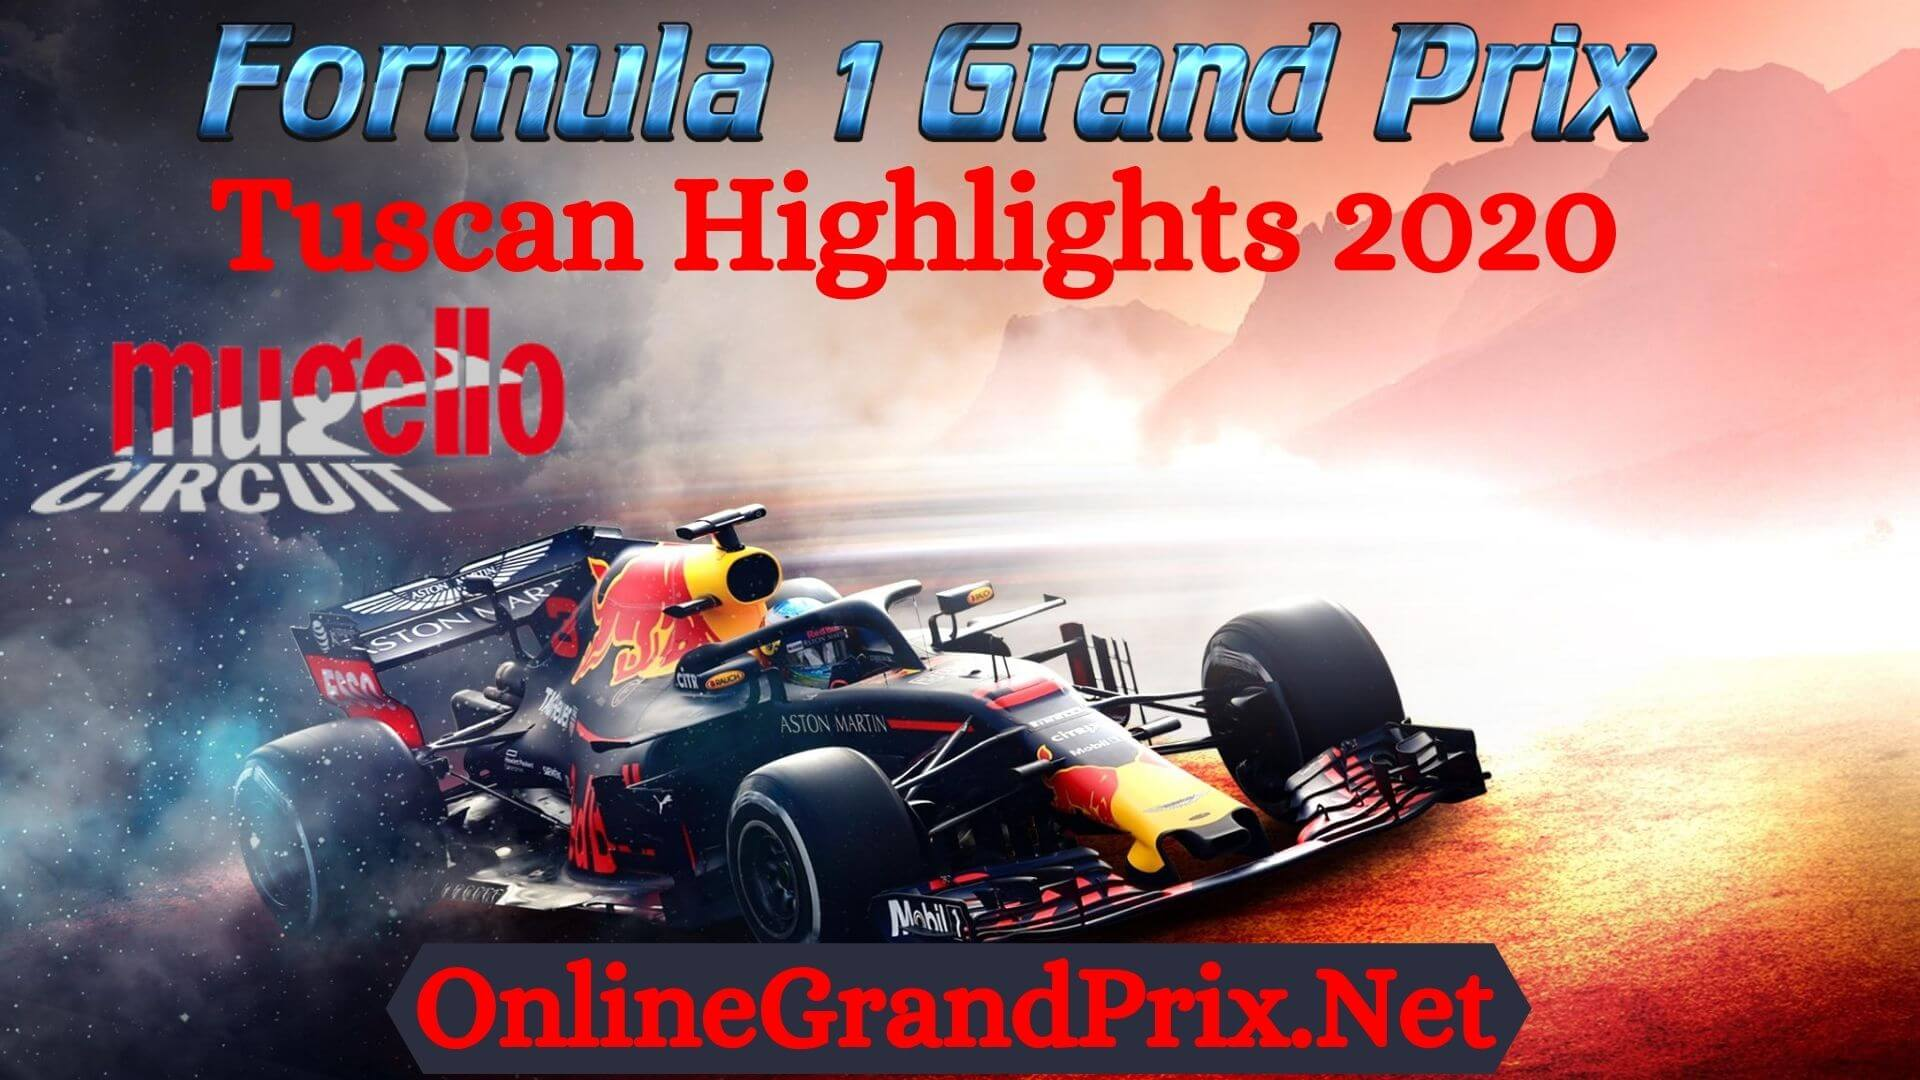 Tuscan GP F1 Highlights 2020